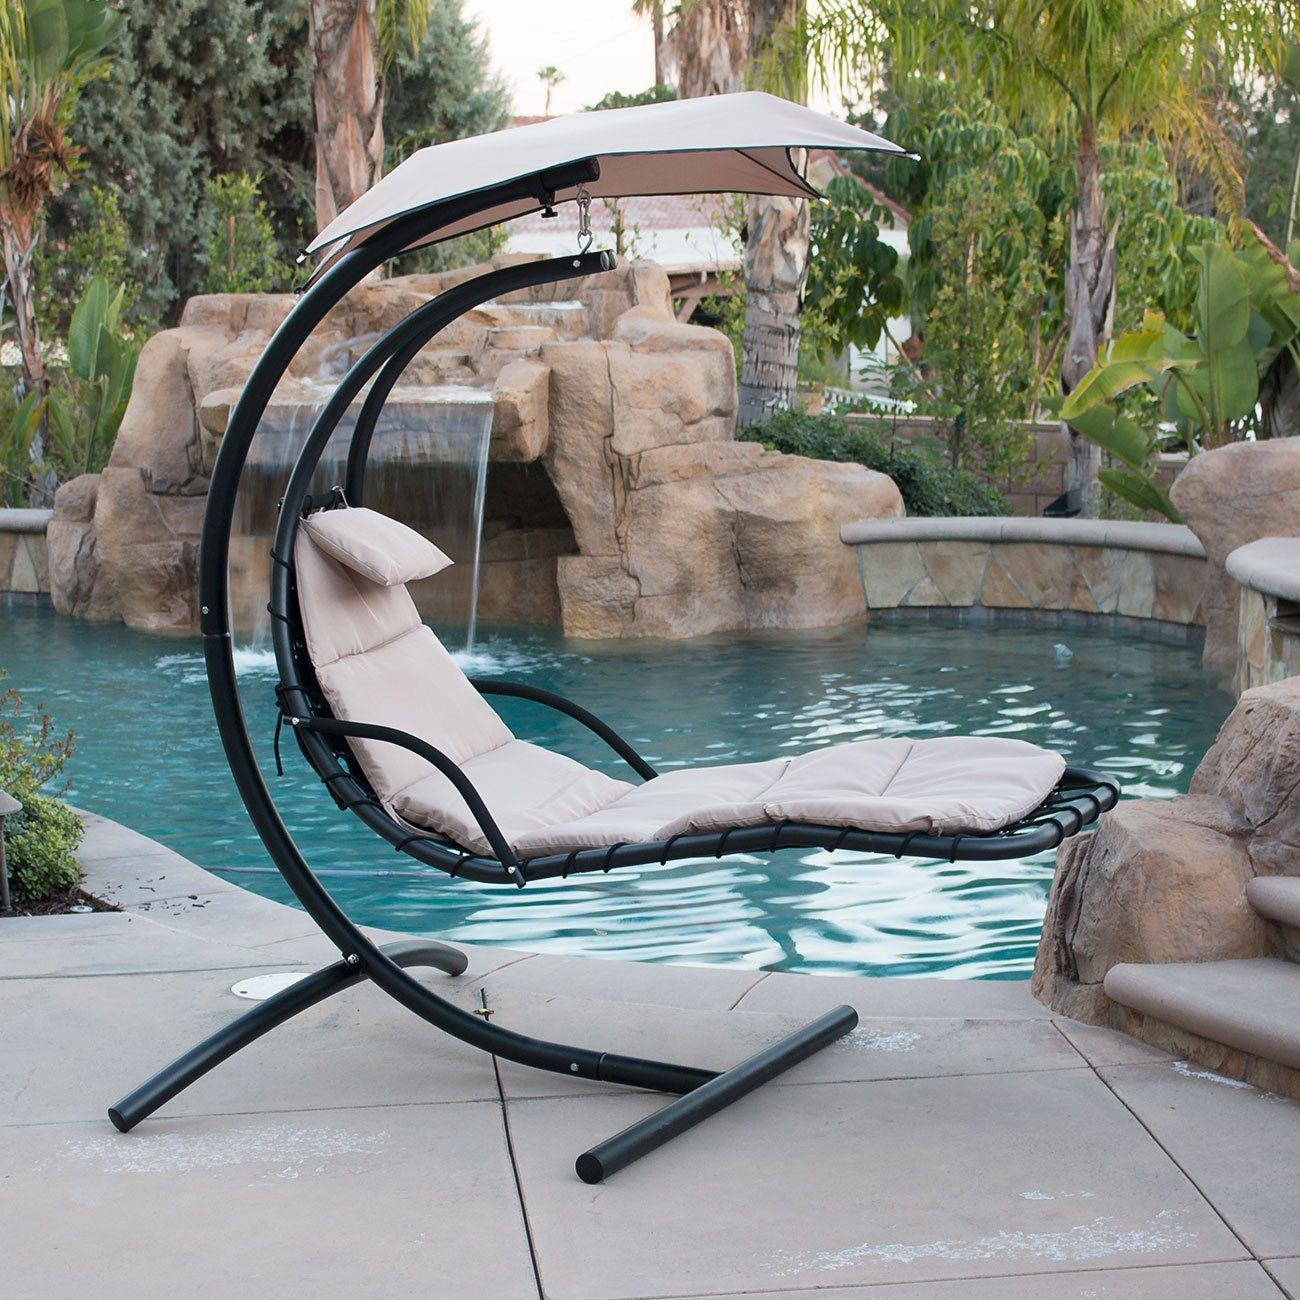 Hanging Helicopter dream Lounger Chair Arc Stand Swing Hammock Chair Canopy tan in Home u0026 Garden Yard Garden u0026 Outdoor Living Patio u0026 Garden Furniture ... & Amazon.com : BELLEZZA© Hanging Chaise Beige Lounger Chair Arc ...